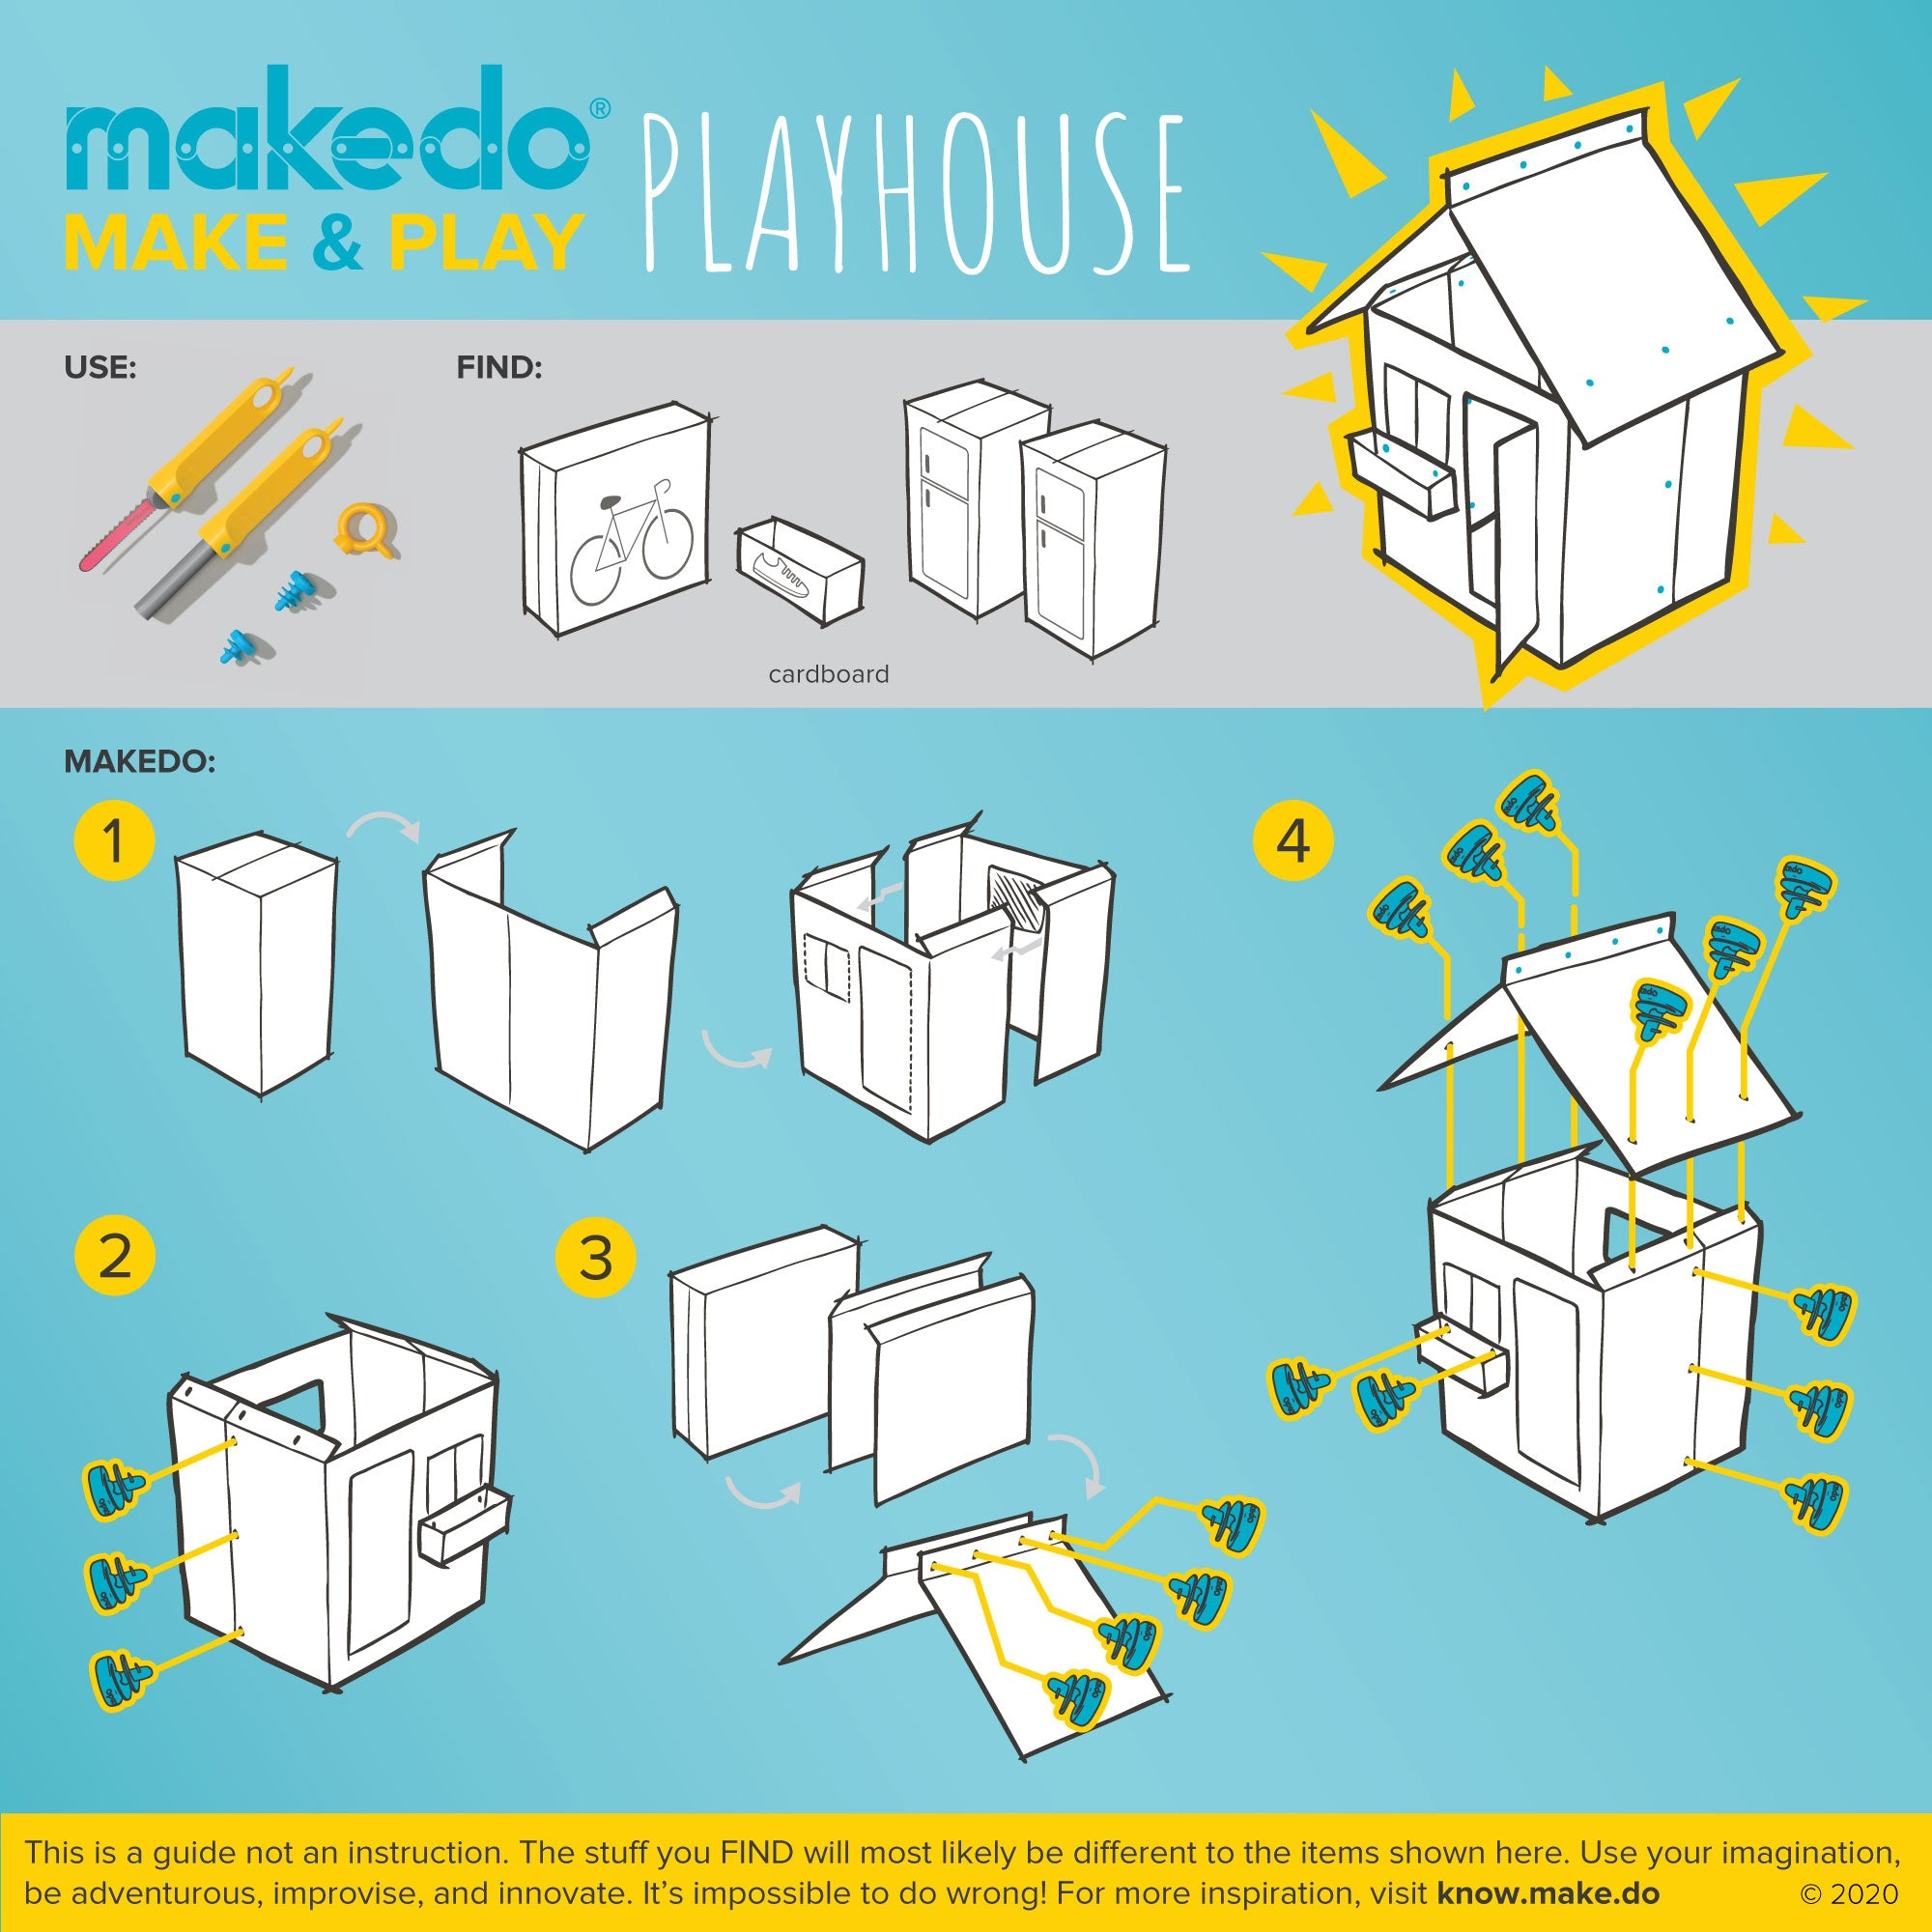 Makedo guided creation - Make & Play - Playhouse